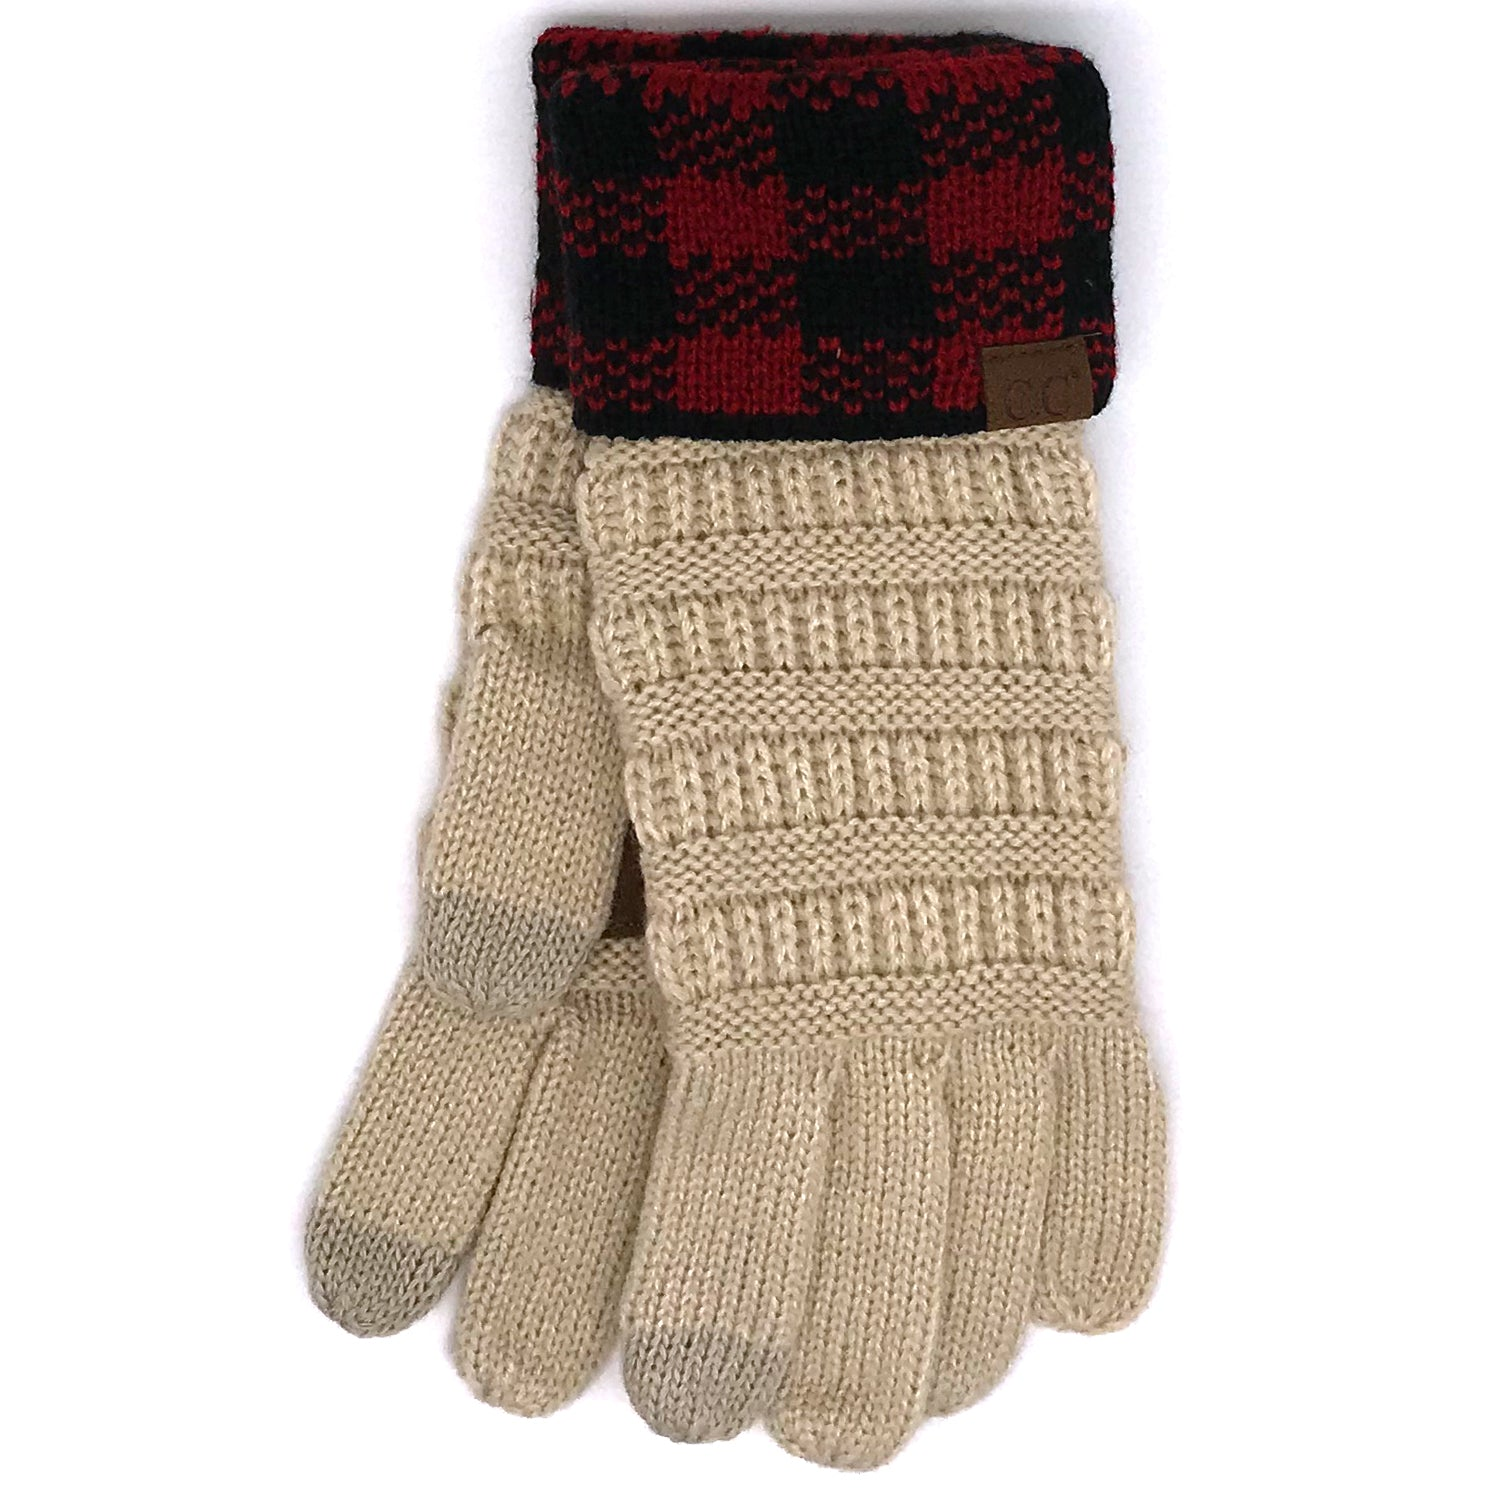 G-17 GLOVE BUFFALO PLAID CUFF BEIGE RED/BLACK